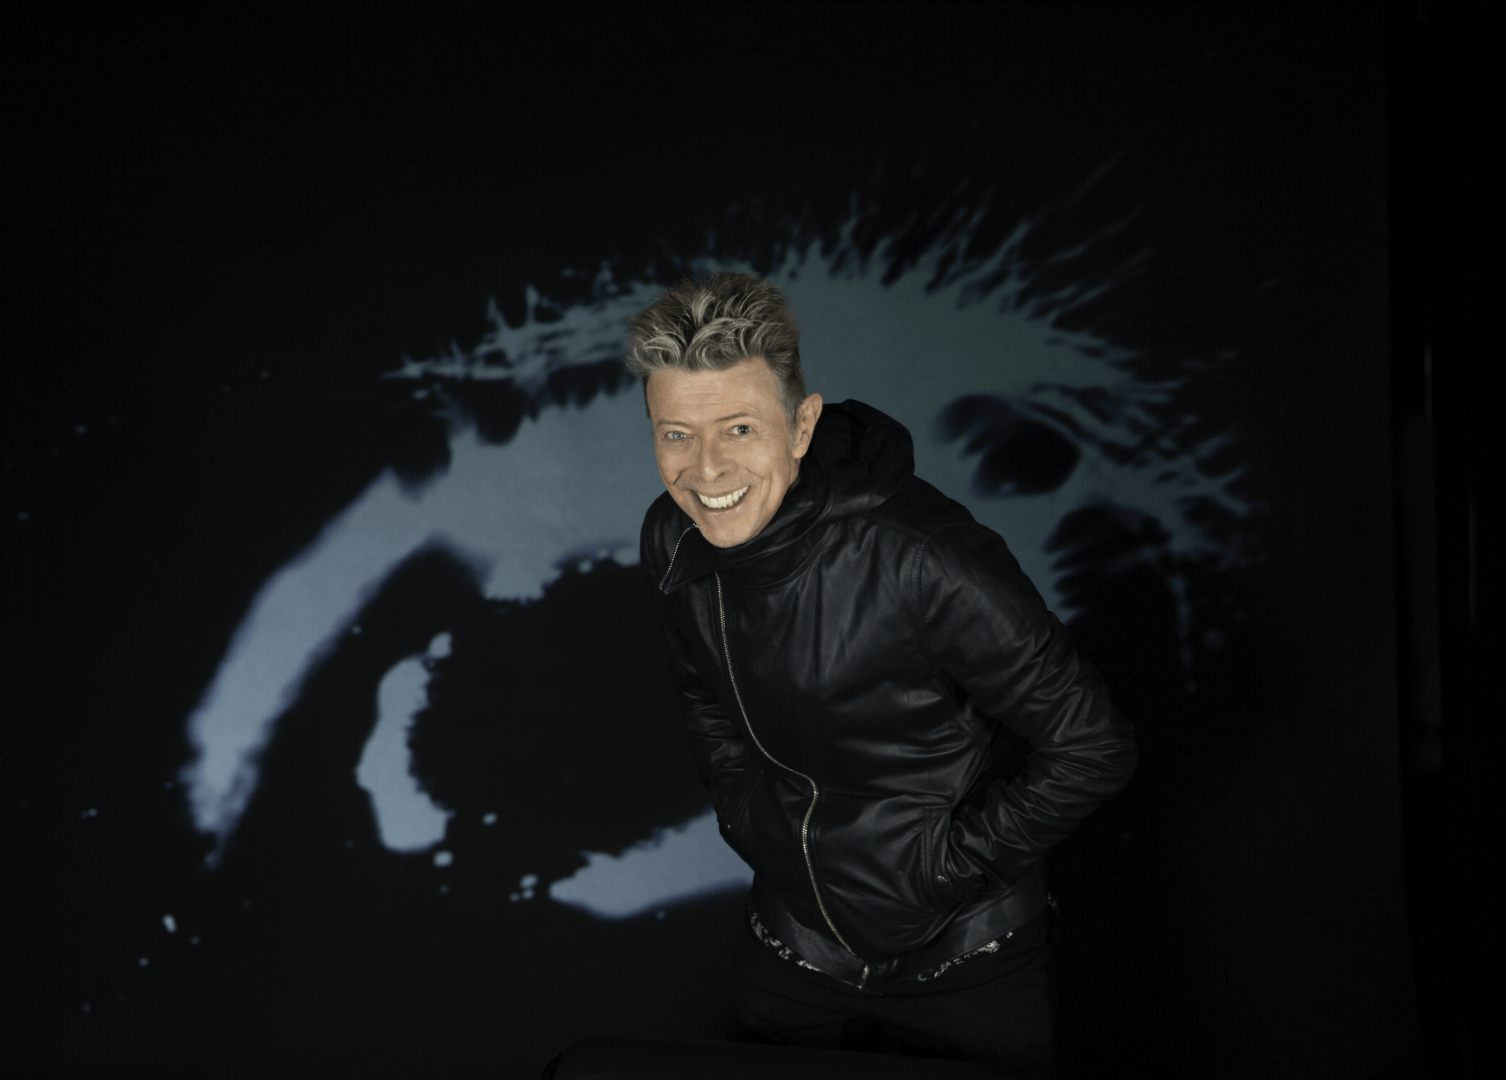 David Bowie promotes his Blackstar album